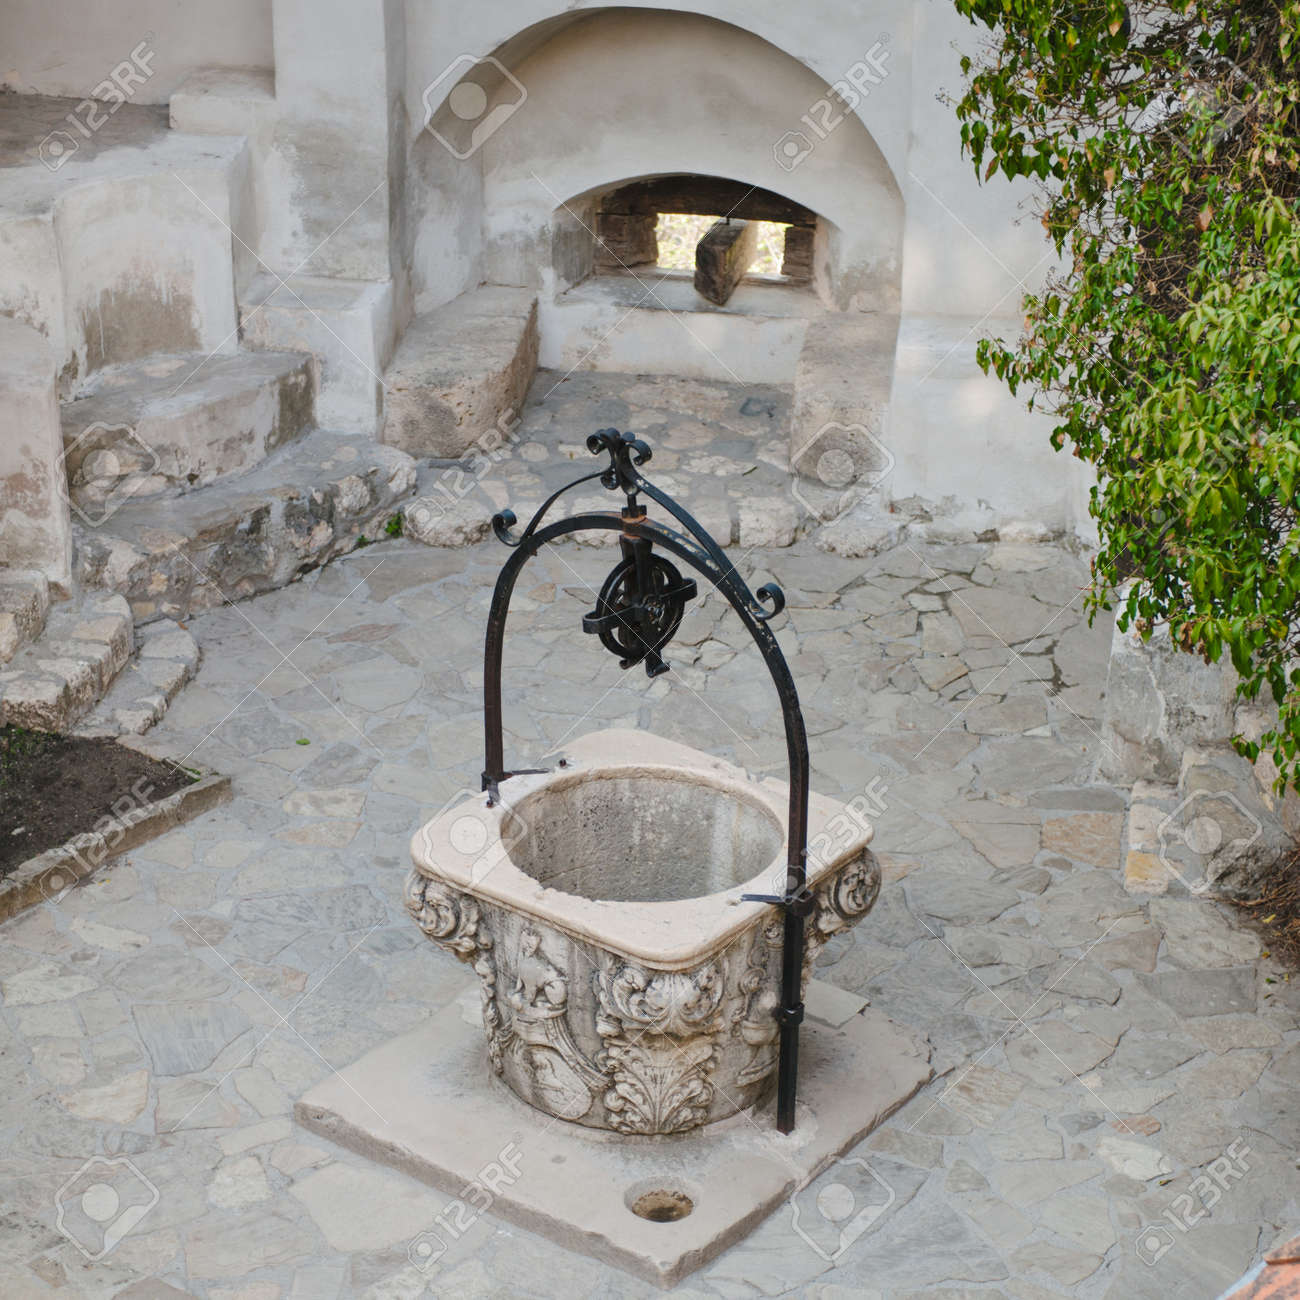 """Water fountain at Bran Castle (Dracula's Castle), in Transylvania, Romania. This fountain is found in the internal courtyard of the Castle and it is well known forfor its """"make a wish"""" qualities. Stock Photo - 19254382"""